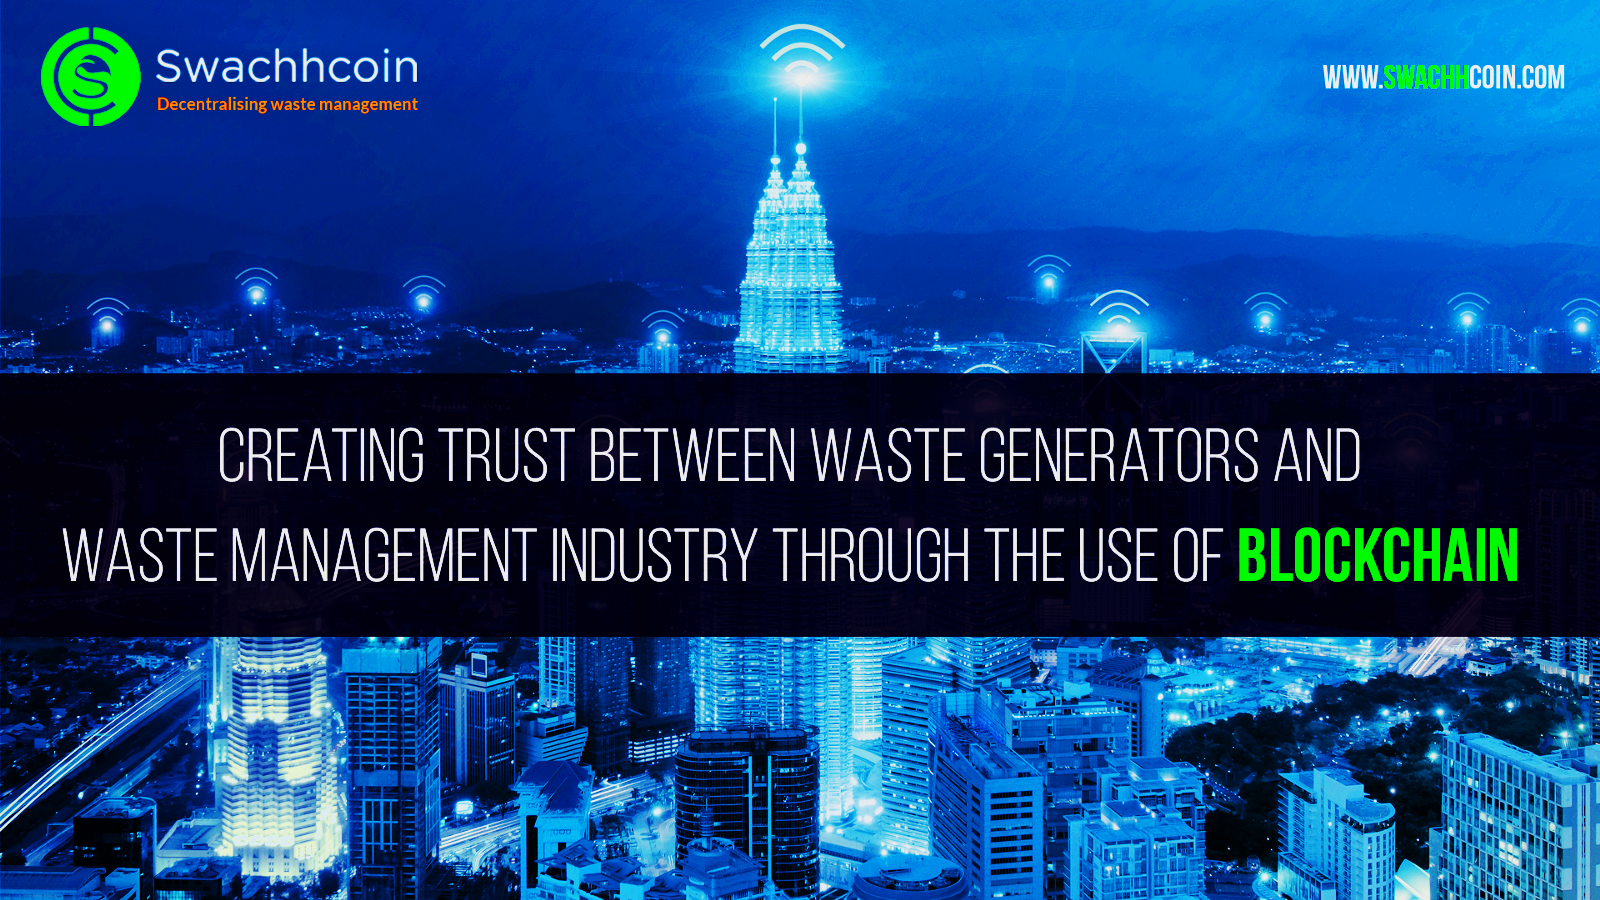 /smart-waste-management-and-blockchain-technology-887a8a185357 feature image